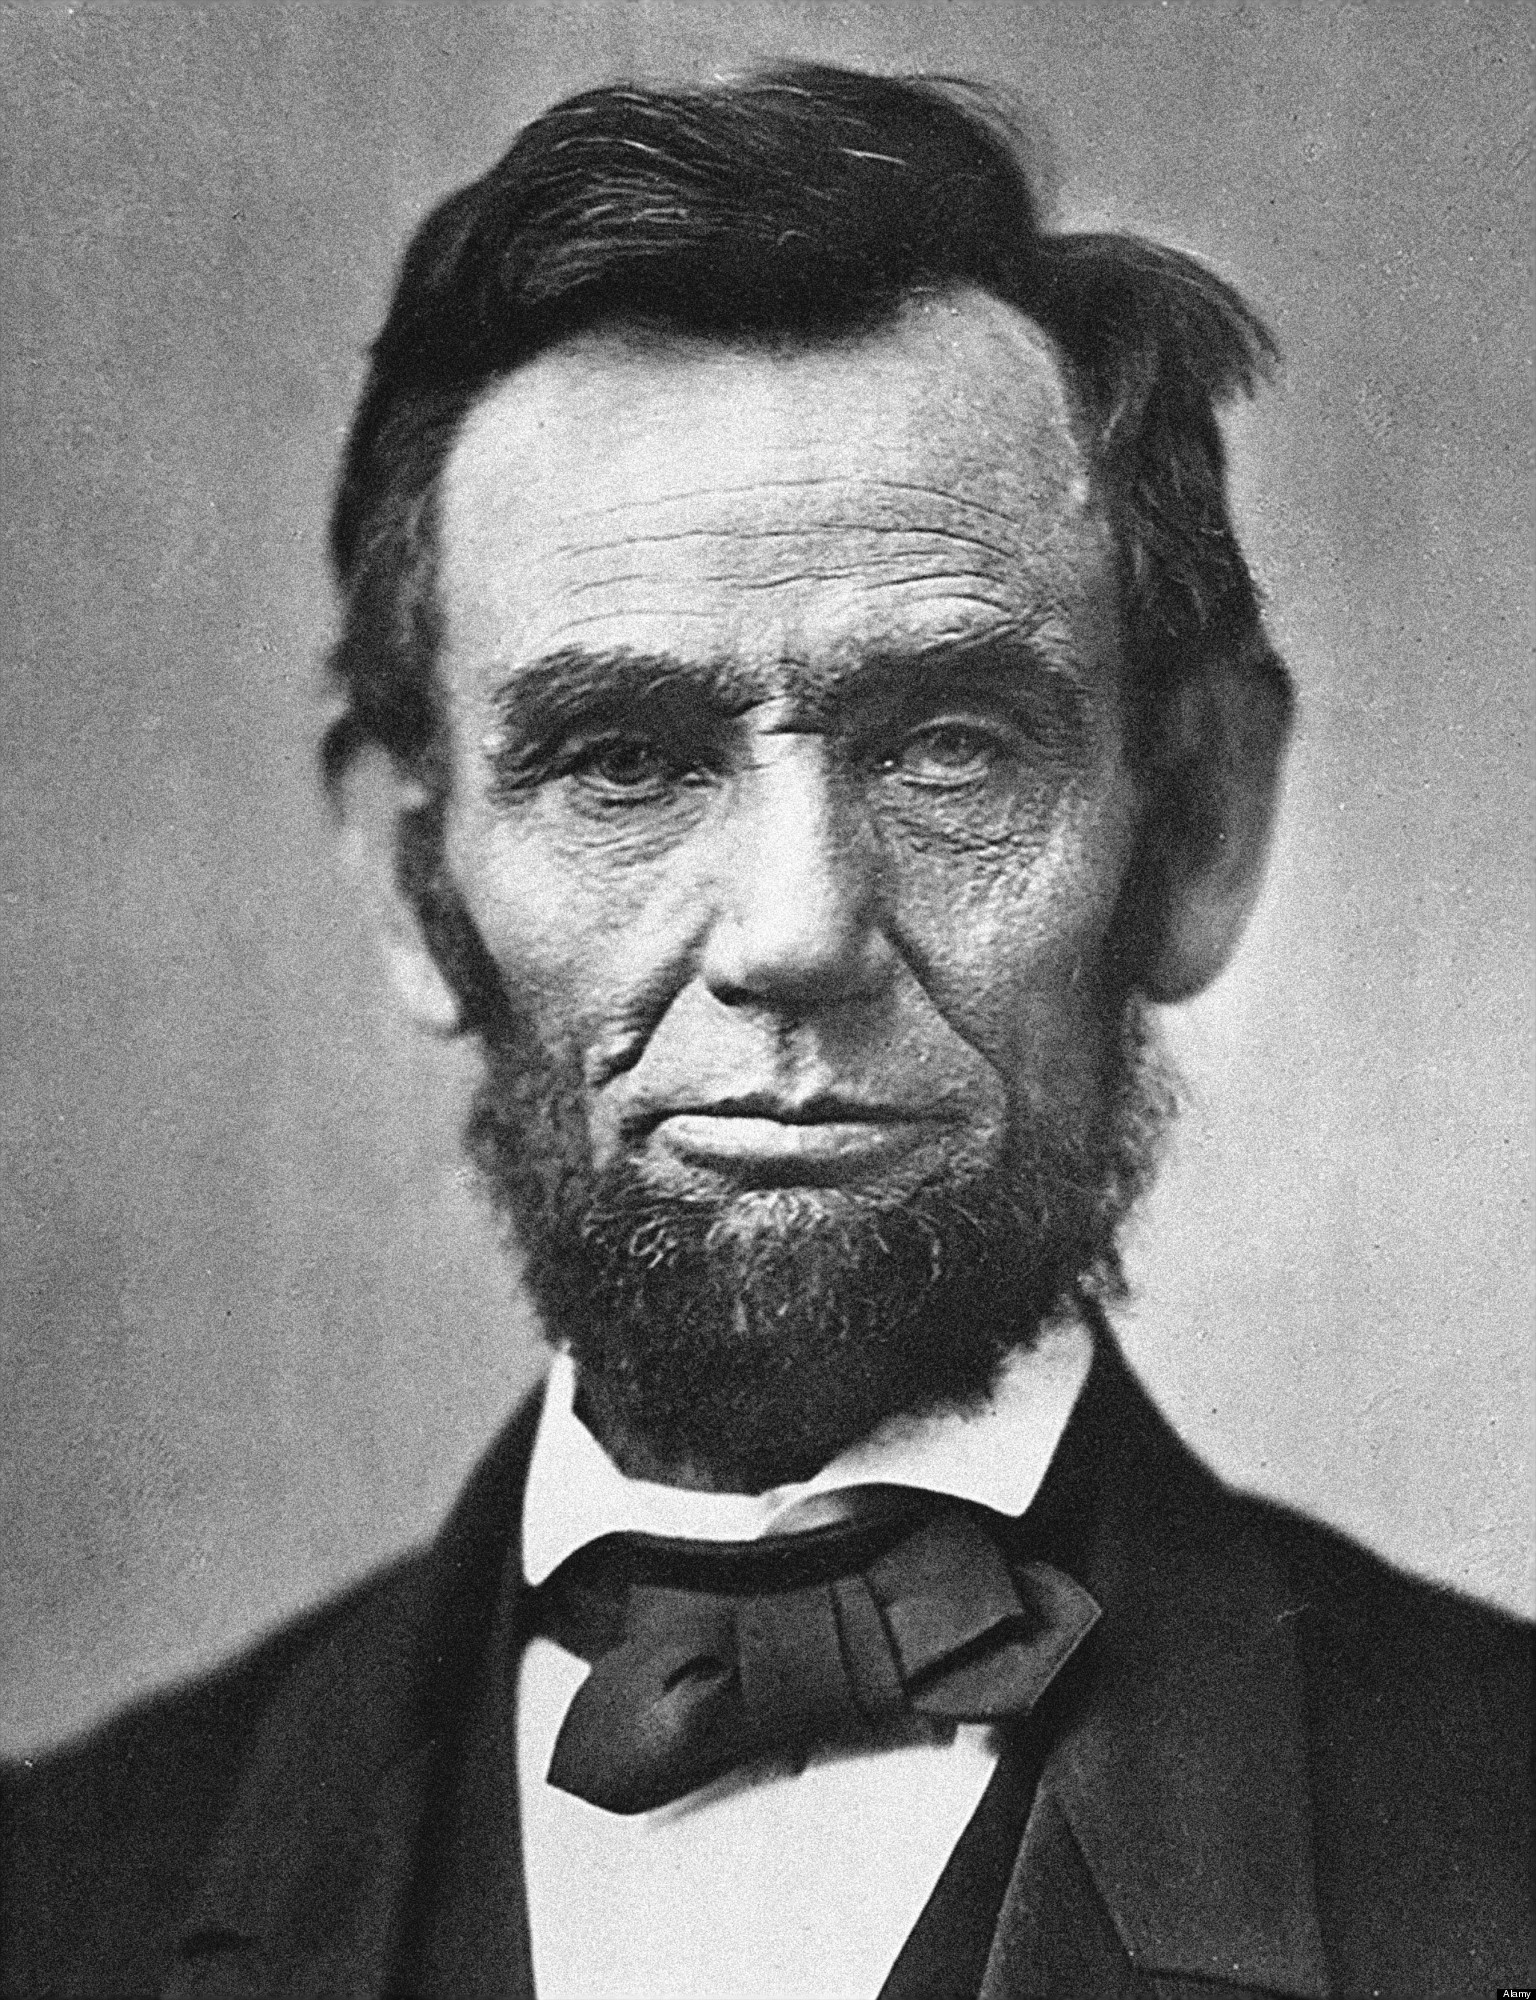 CXR59R Abraham Lincoln 16th President of the United States